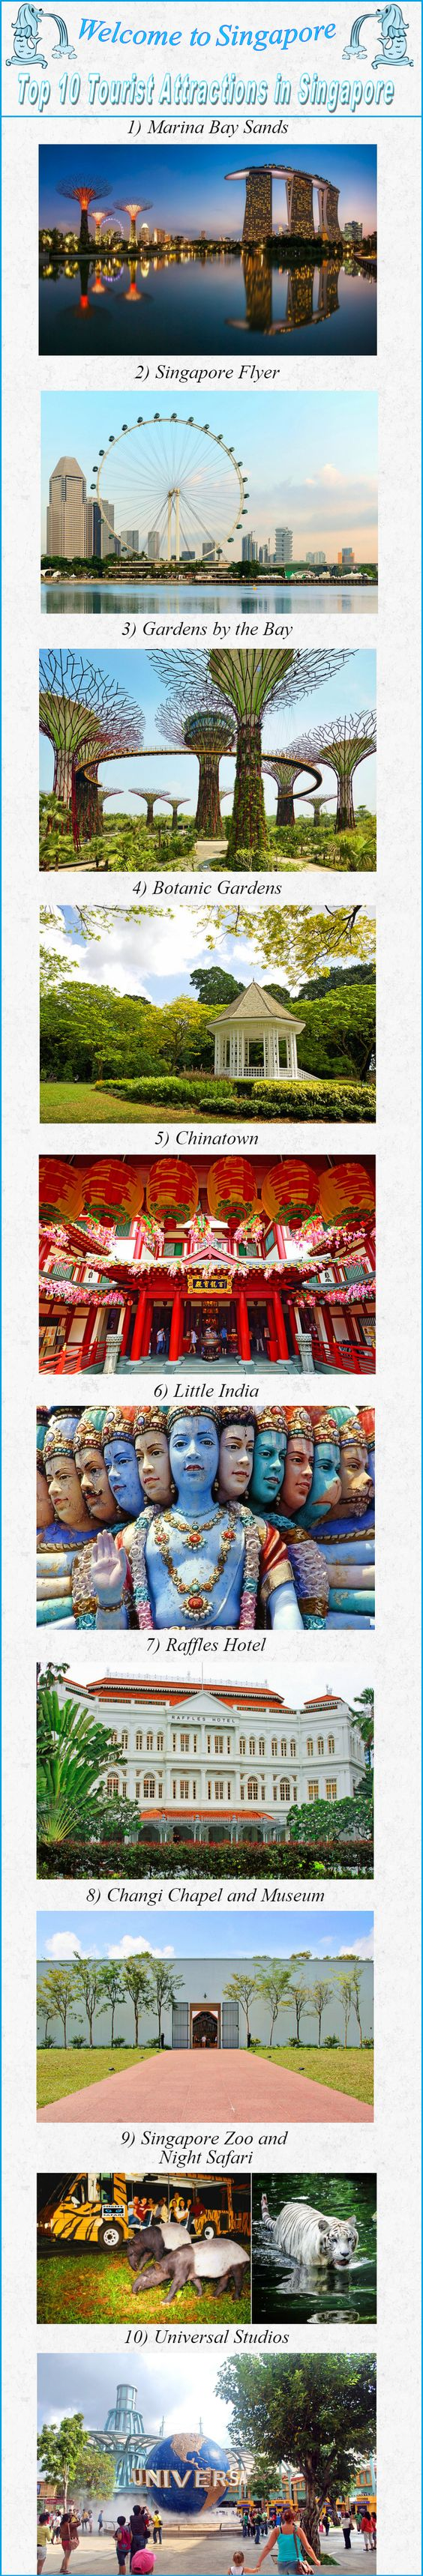 2015-2018 Top 10 #Tourist Attractions in #Singapore —Guide to moving to Singapore www.expatessentials.net